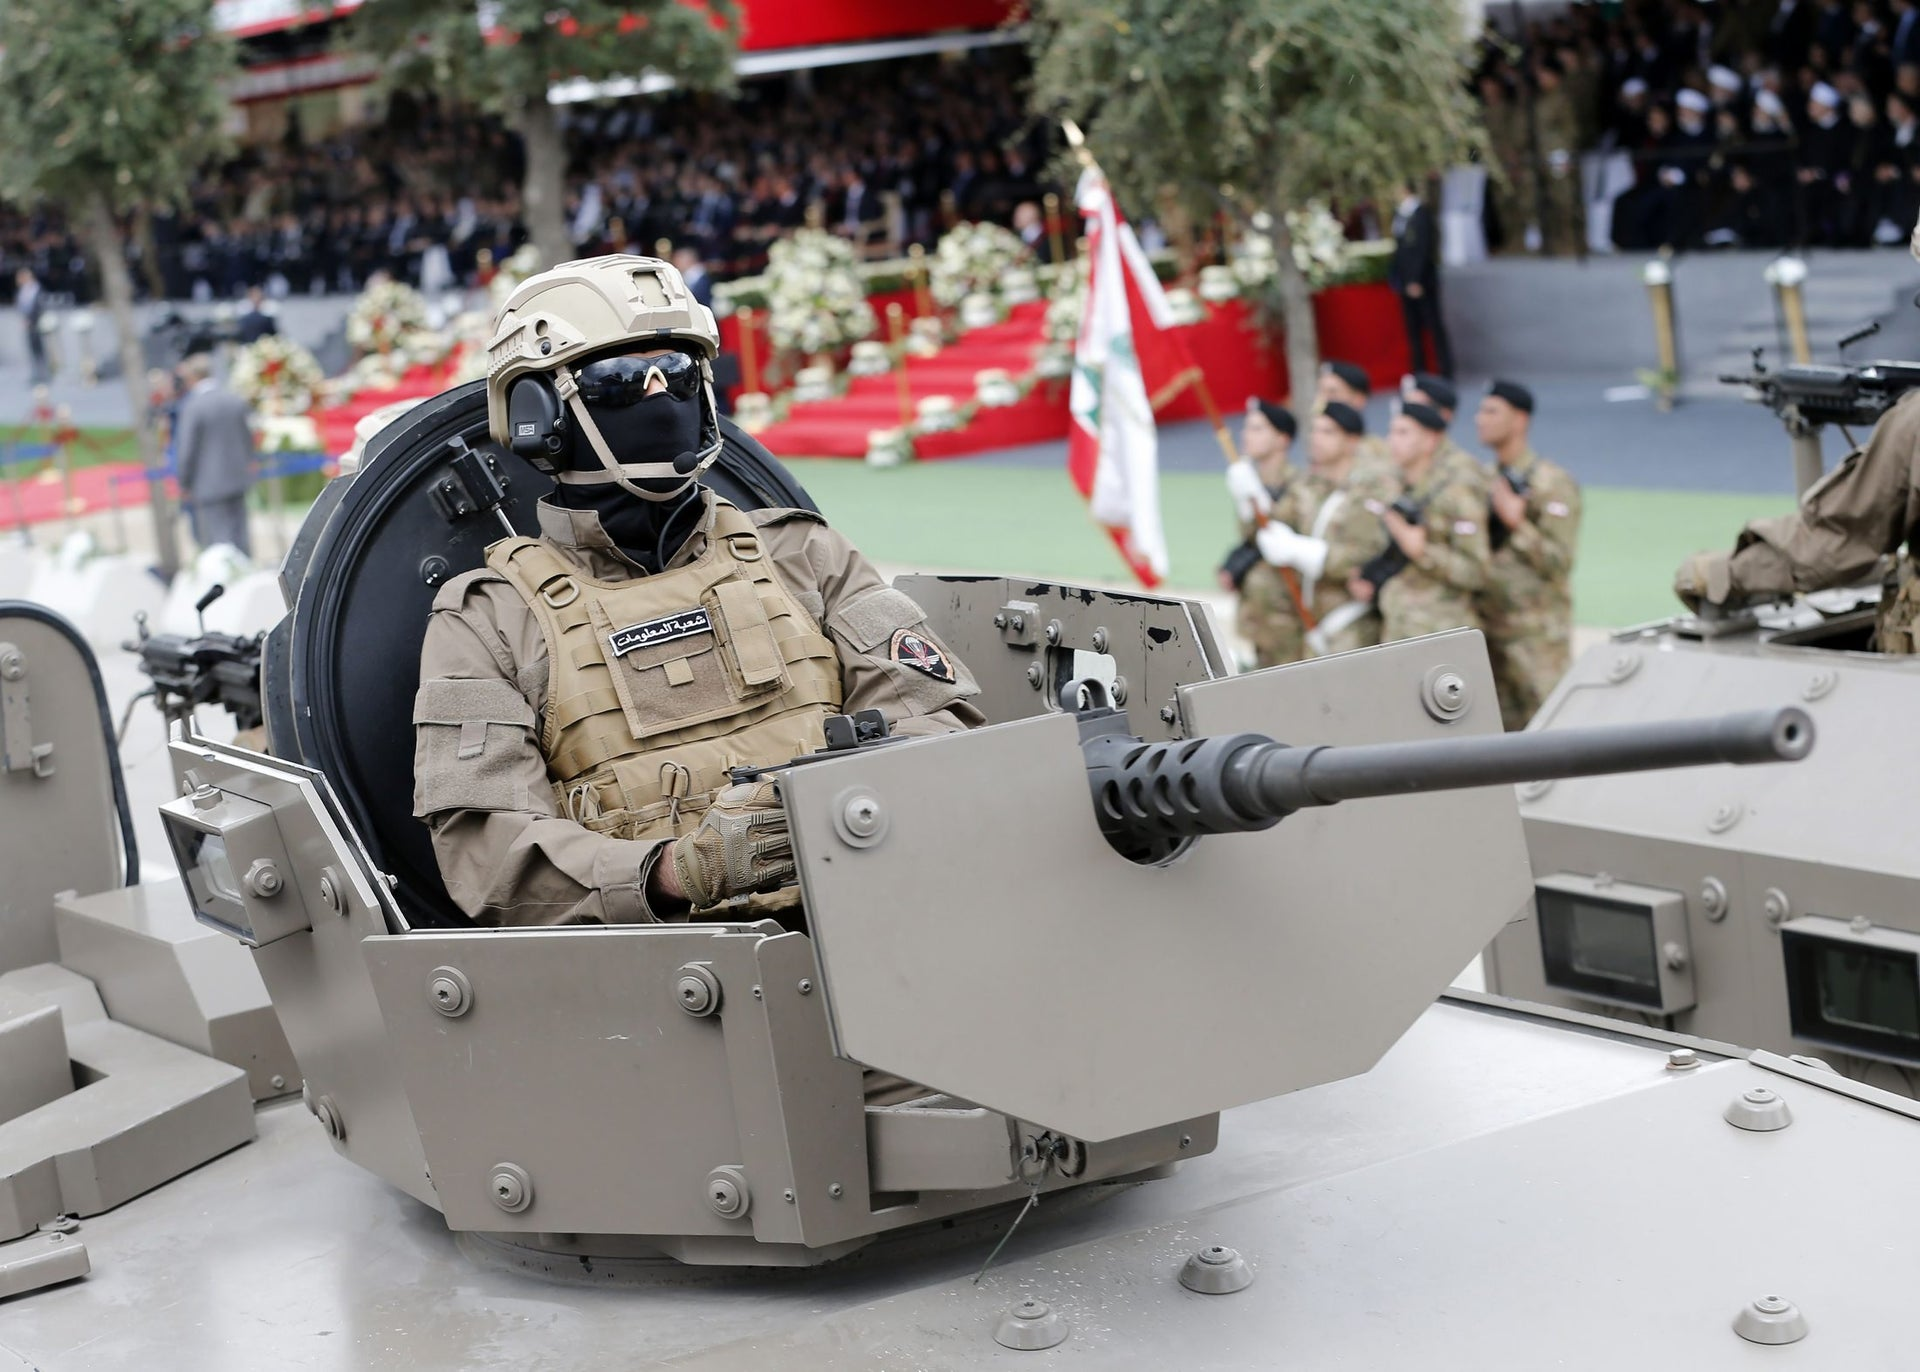 Lebanese armed forces take part in a military parade for Independence Day celebrations marking 74 years since the end of France's mandate in Lebanon, on November 22, 2017 in Beirut.